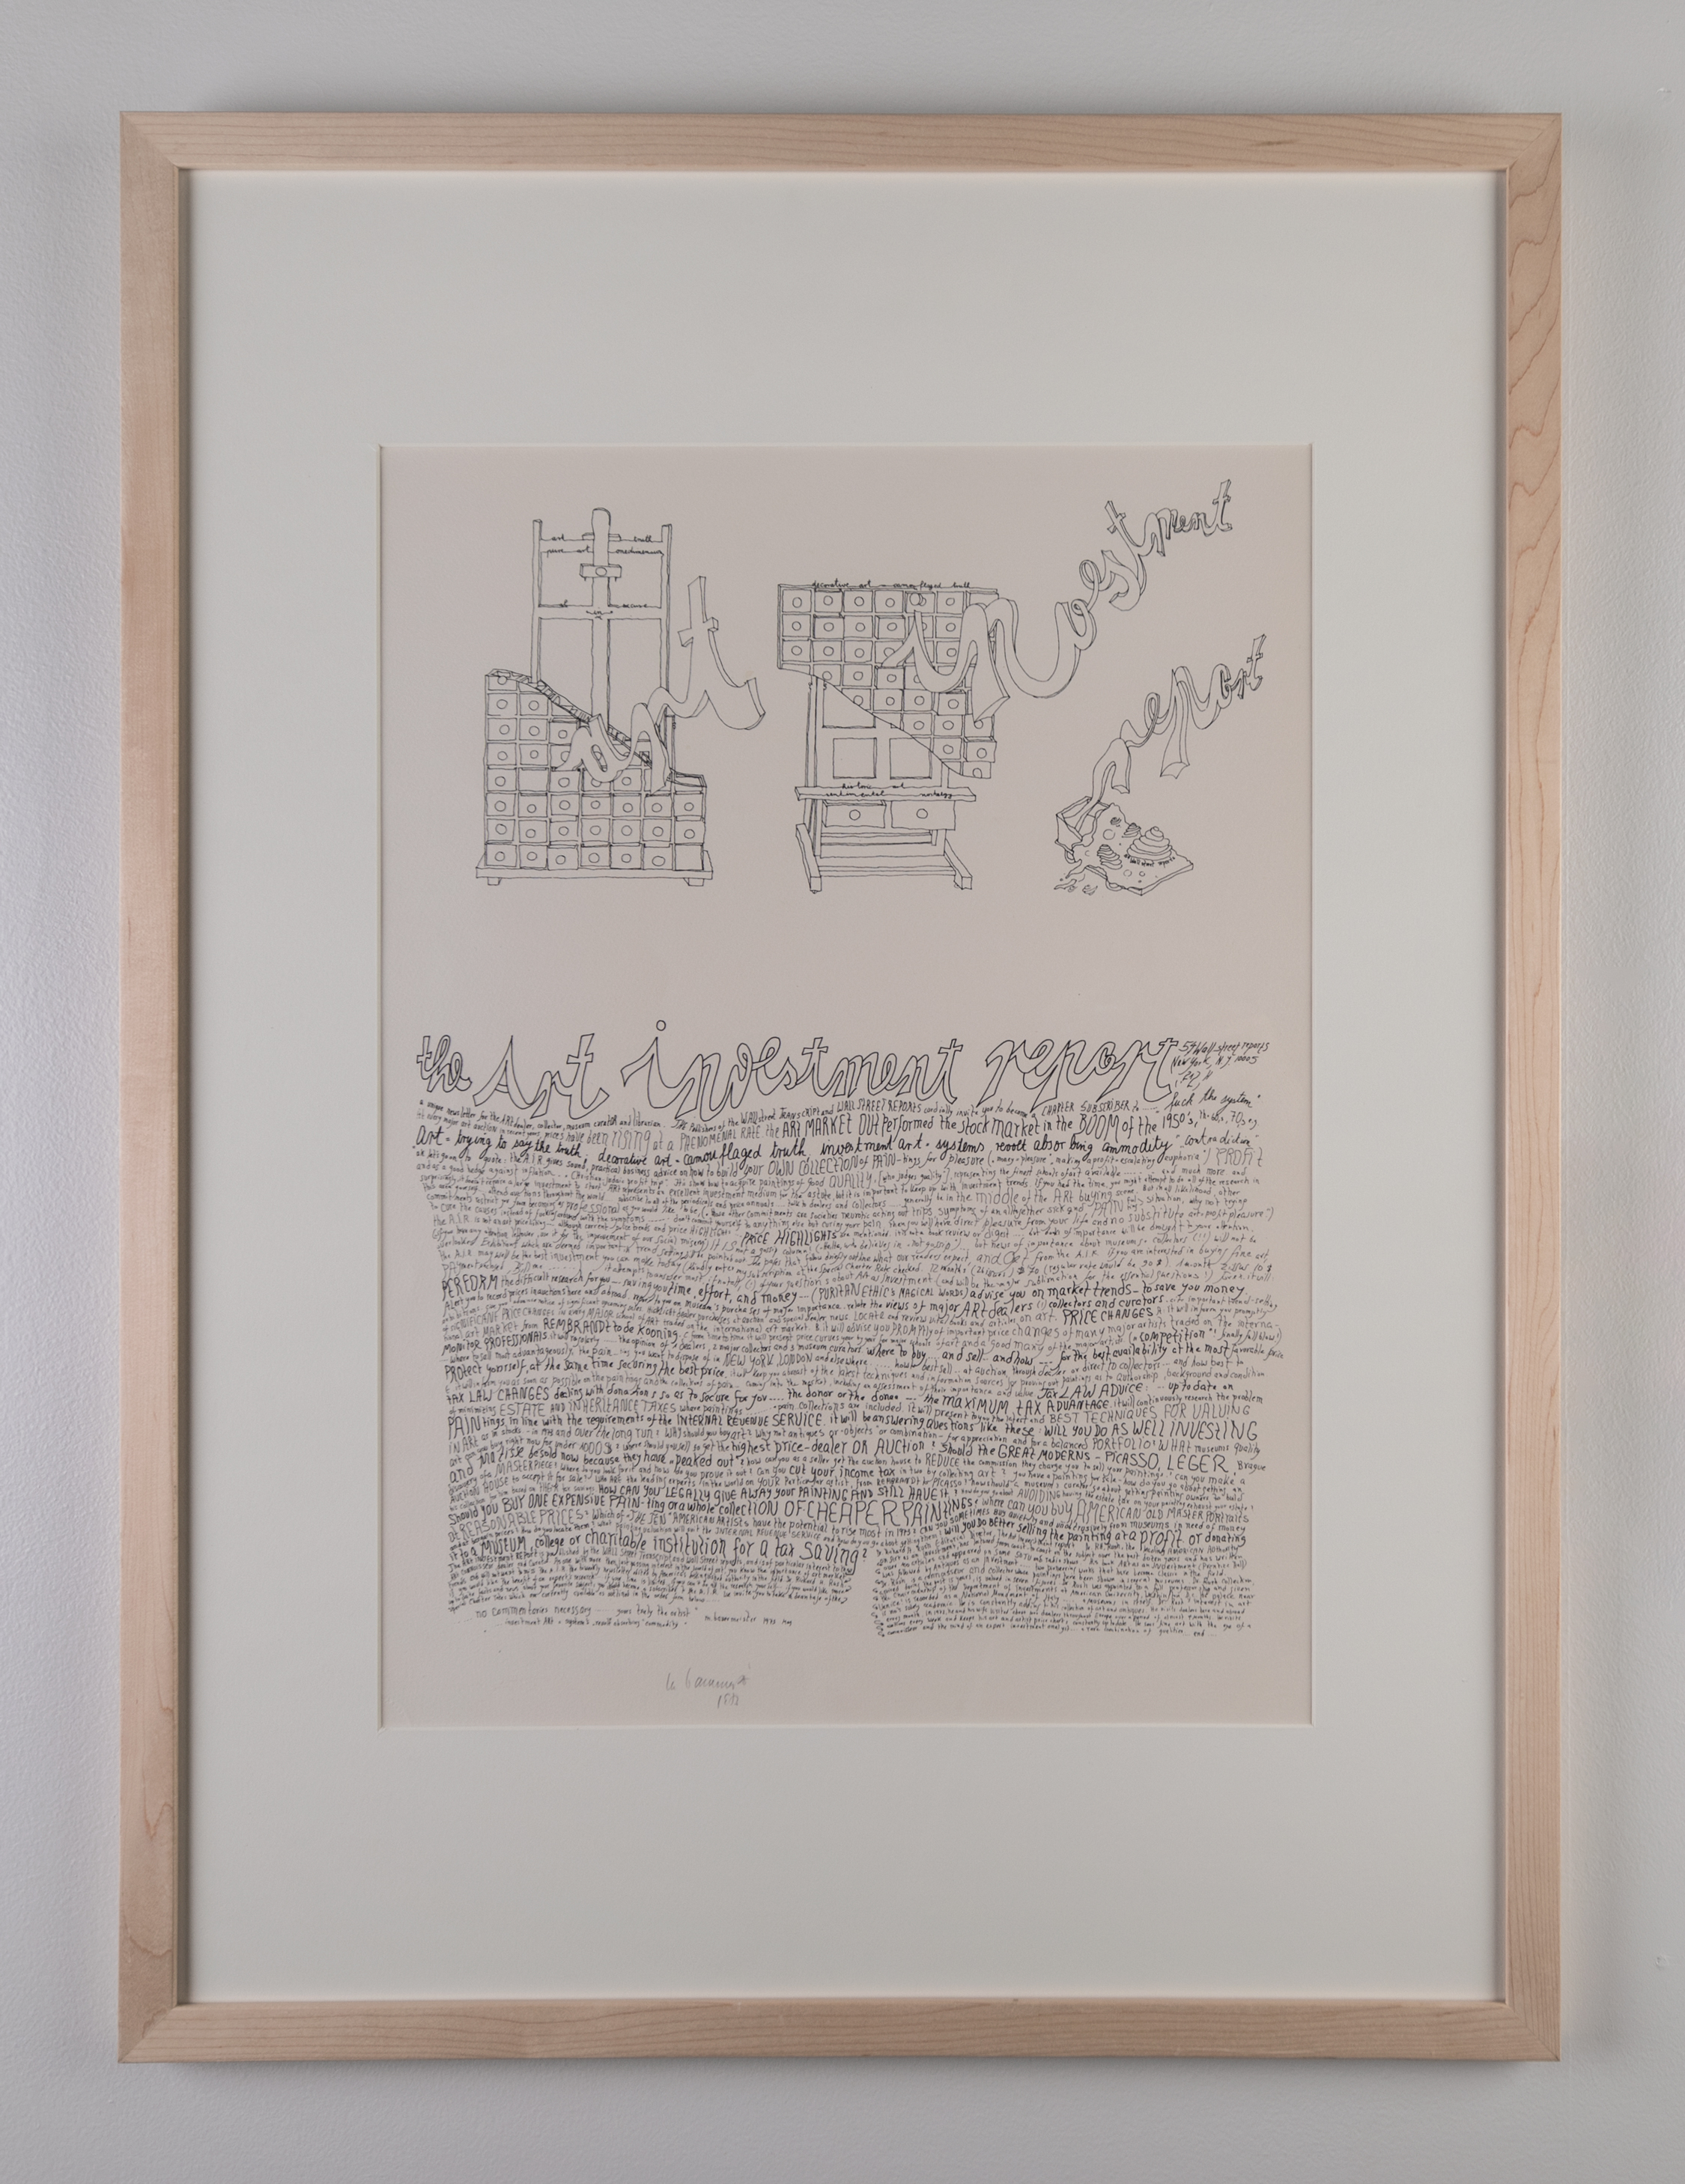 Mary Bauermeister, Art Investment Report, Lithography, 20.5in. x 15.5in., 1973